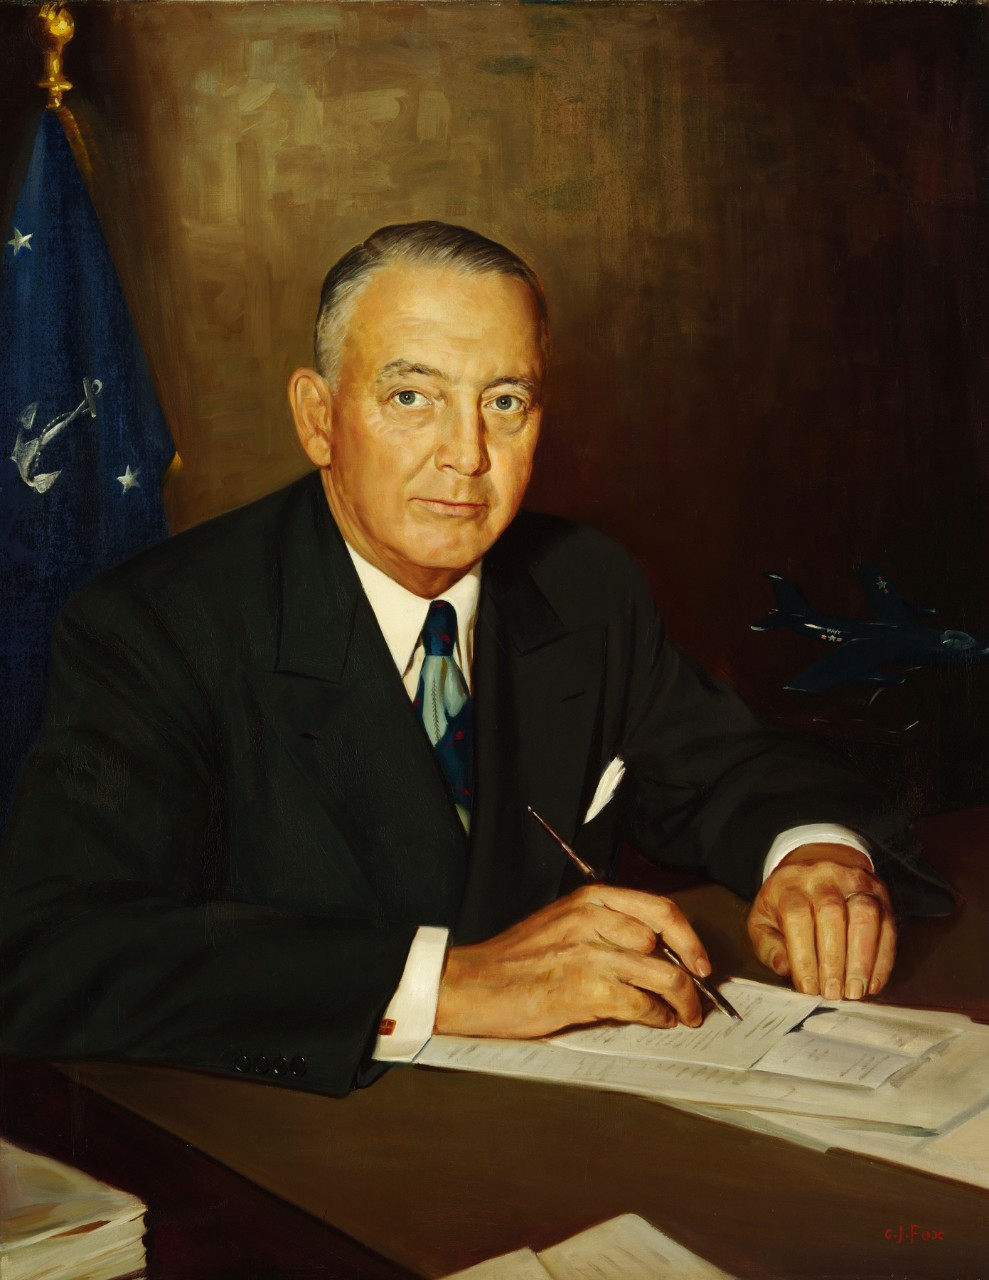 Portrait of Secretary of the Navy Dan Able Kimball